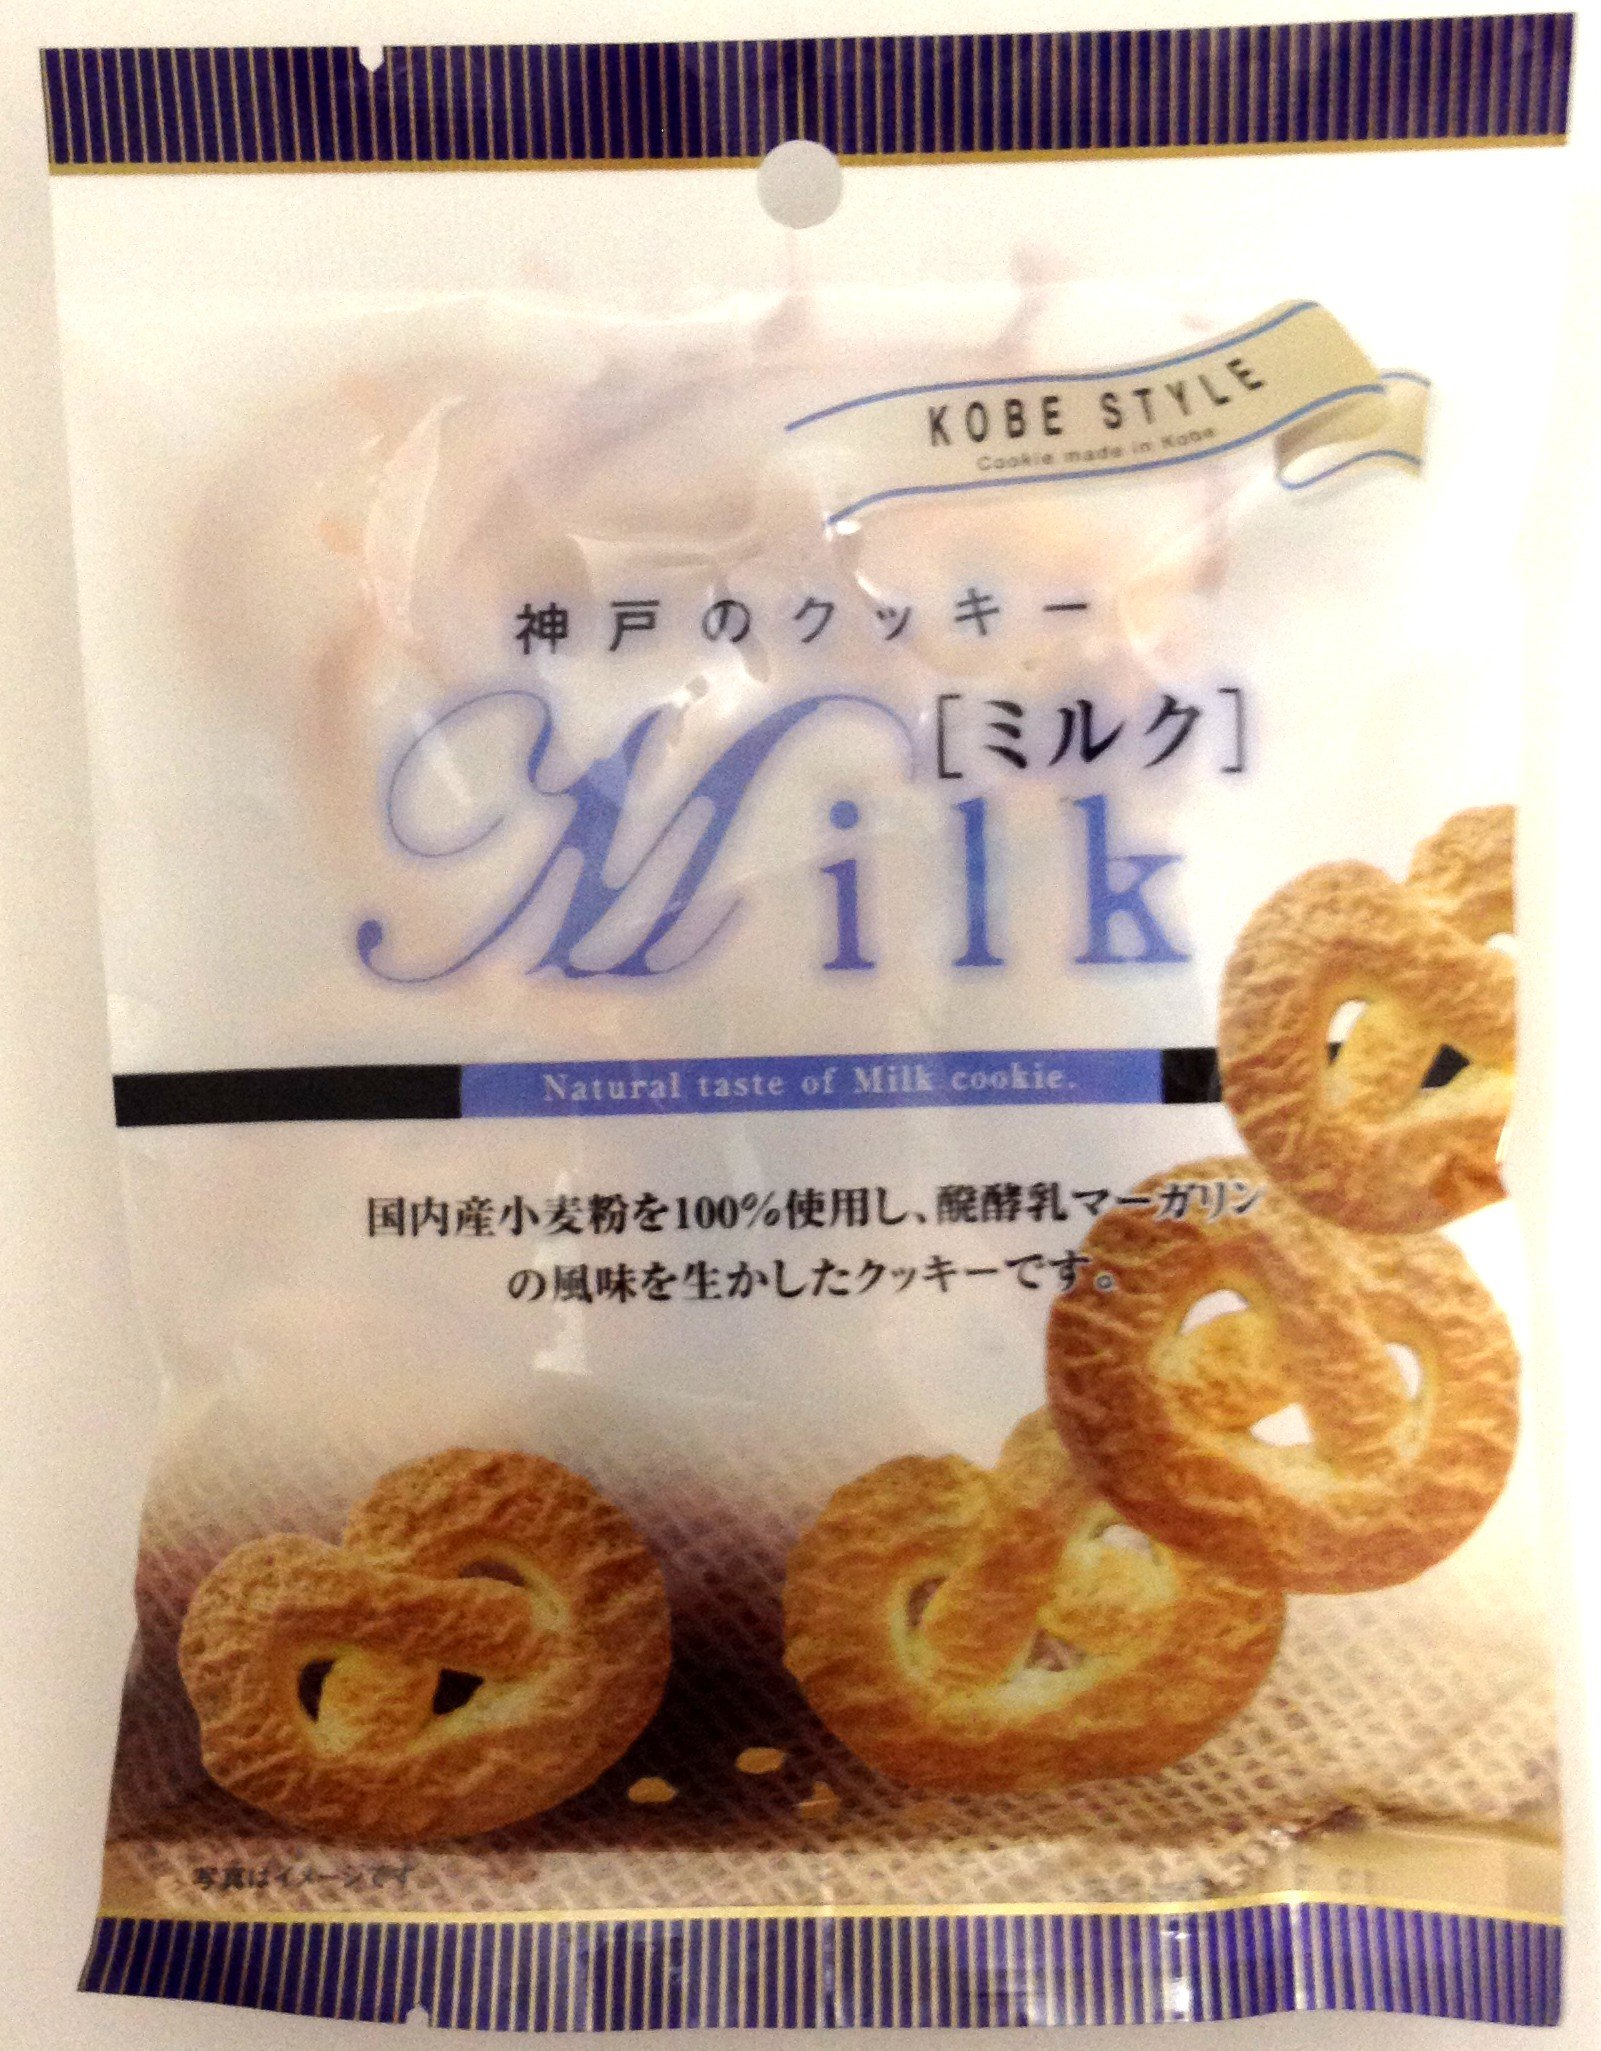 Shoei-do confectionery Kobe cookies milk 80gX20 bags of